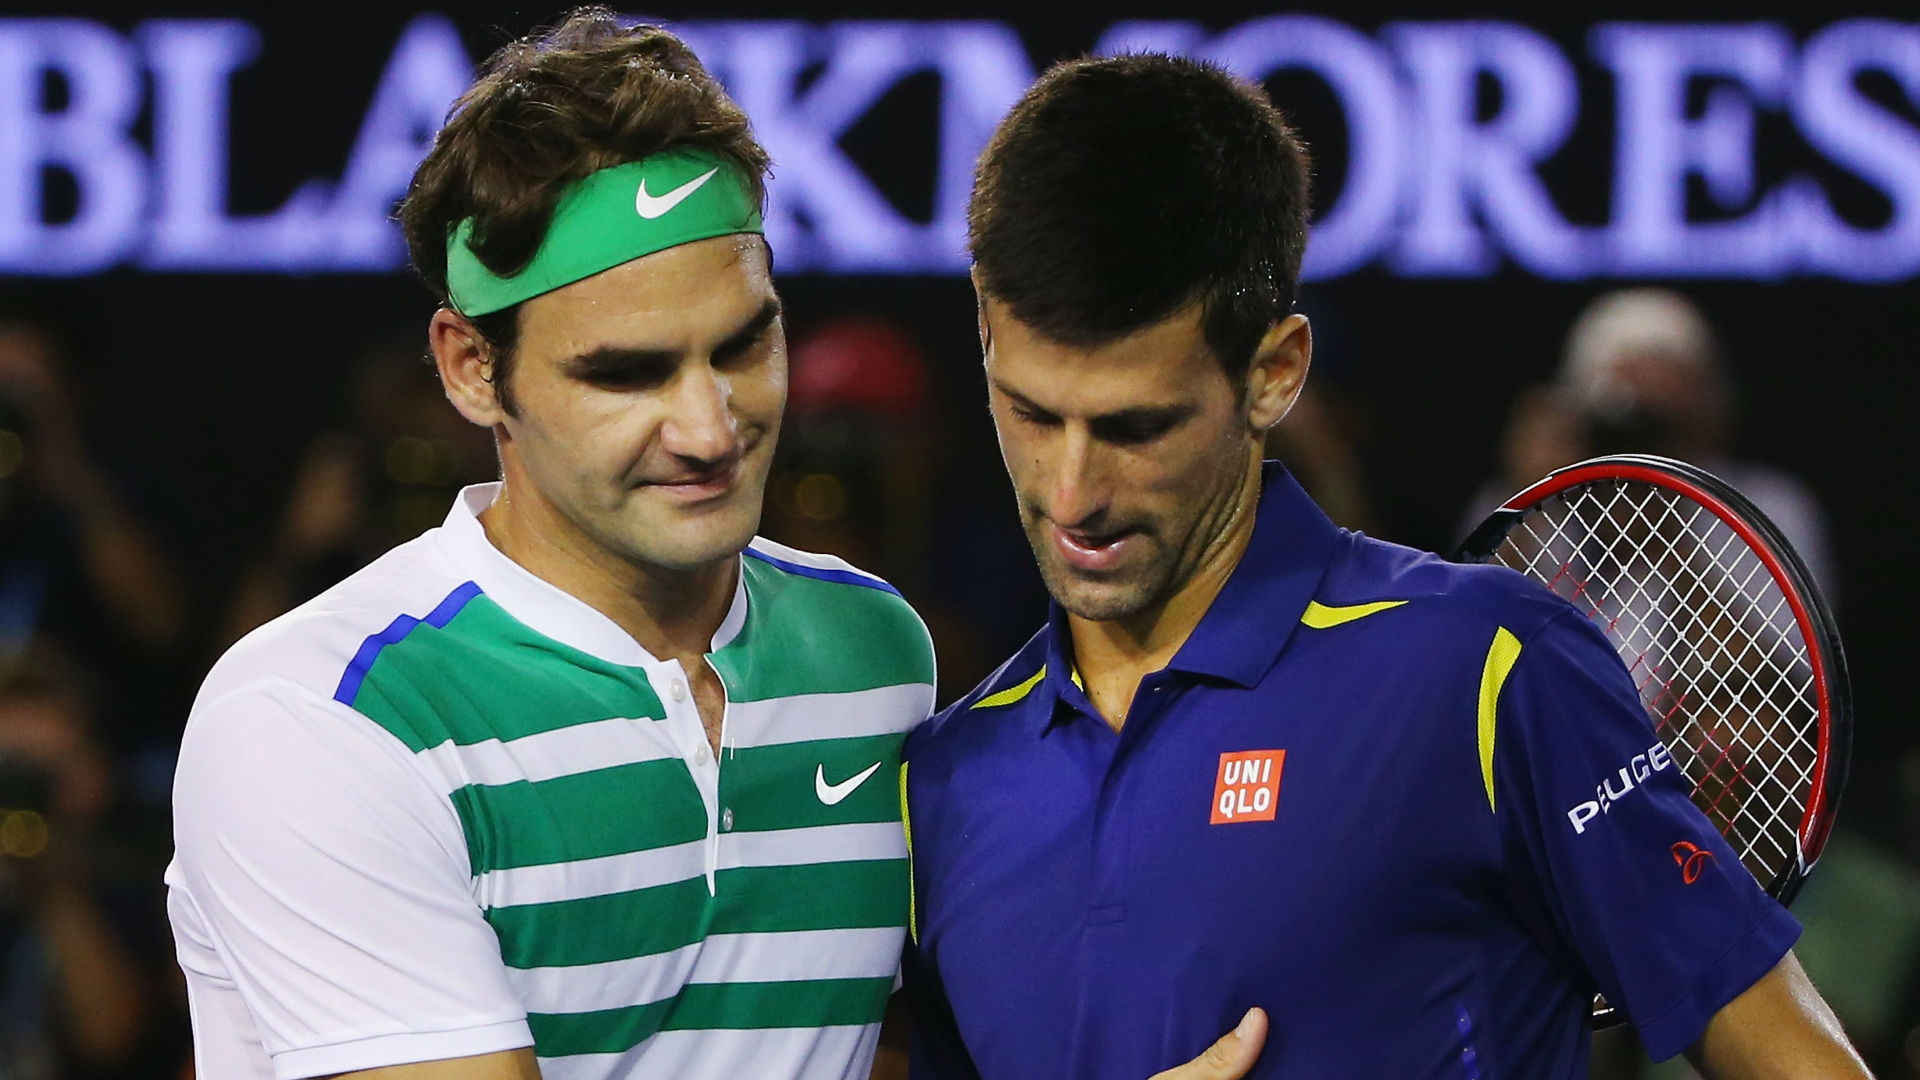 Djokovic out as Federer cruises